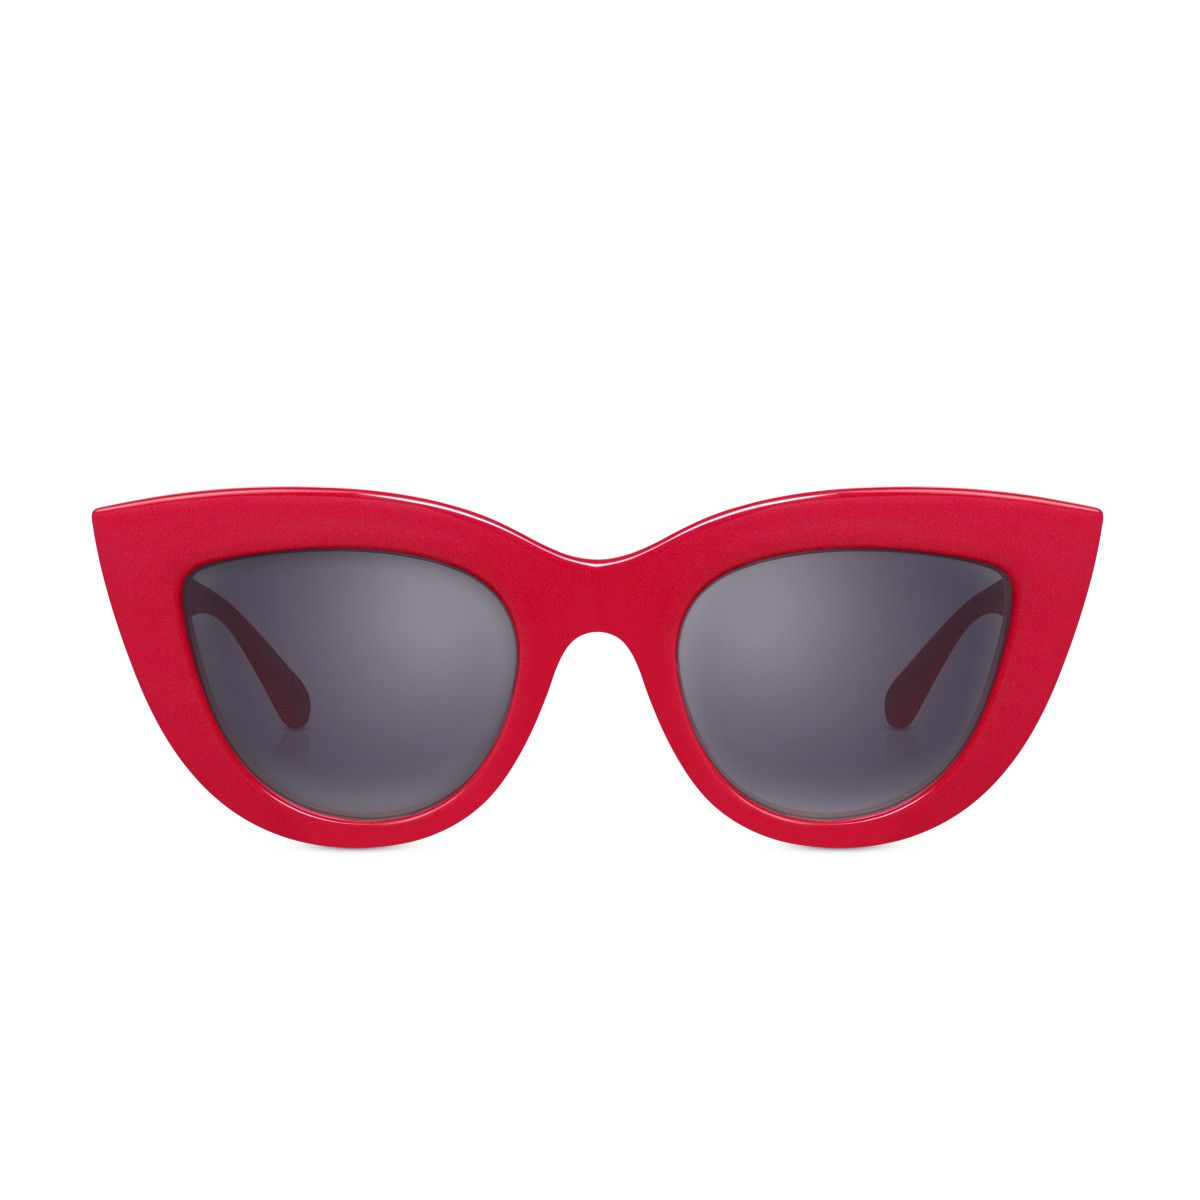 73748a859f 01-Red: Glossy red with black gradient lens. | buy me etc ...